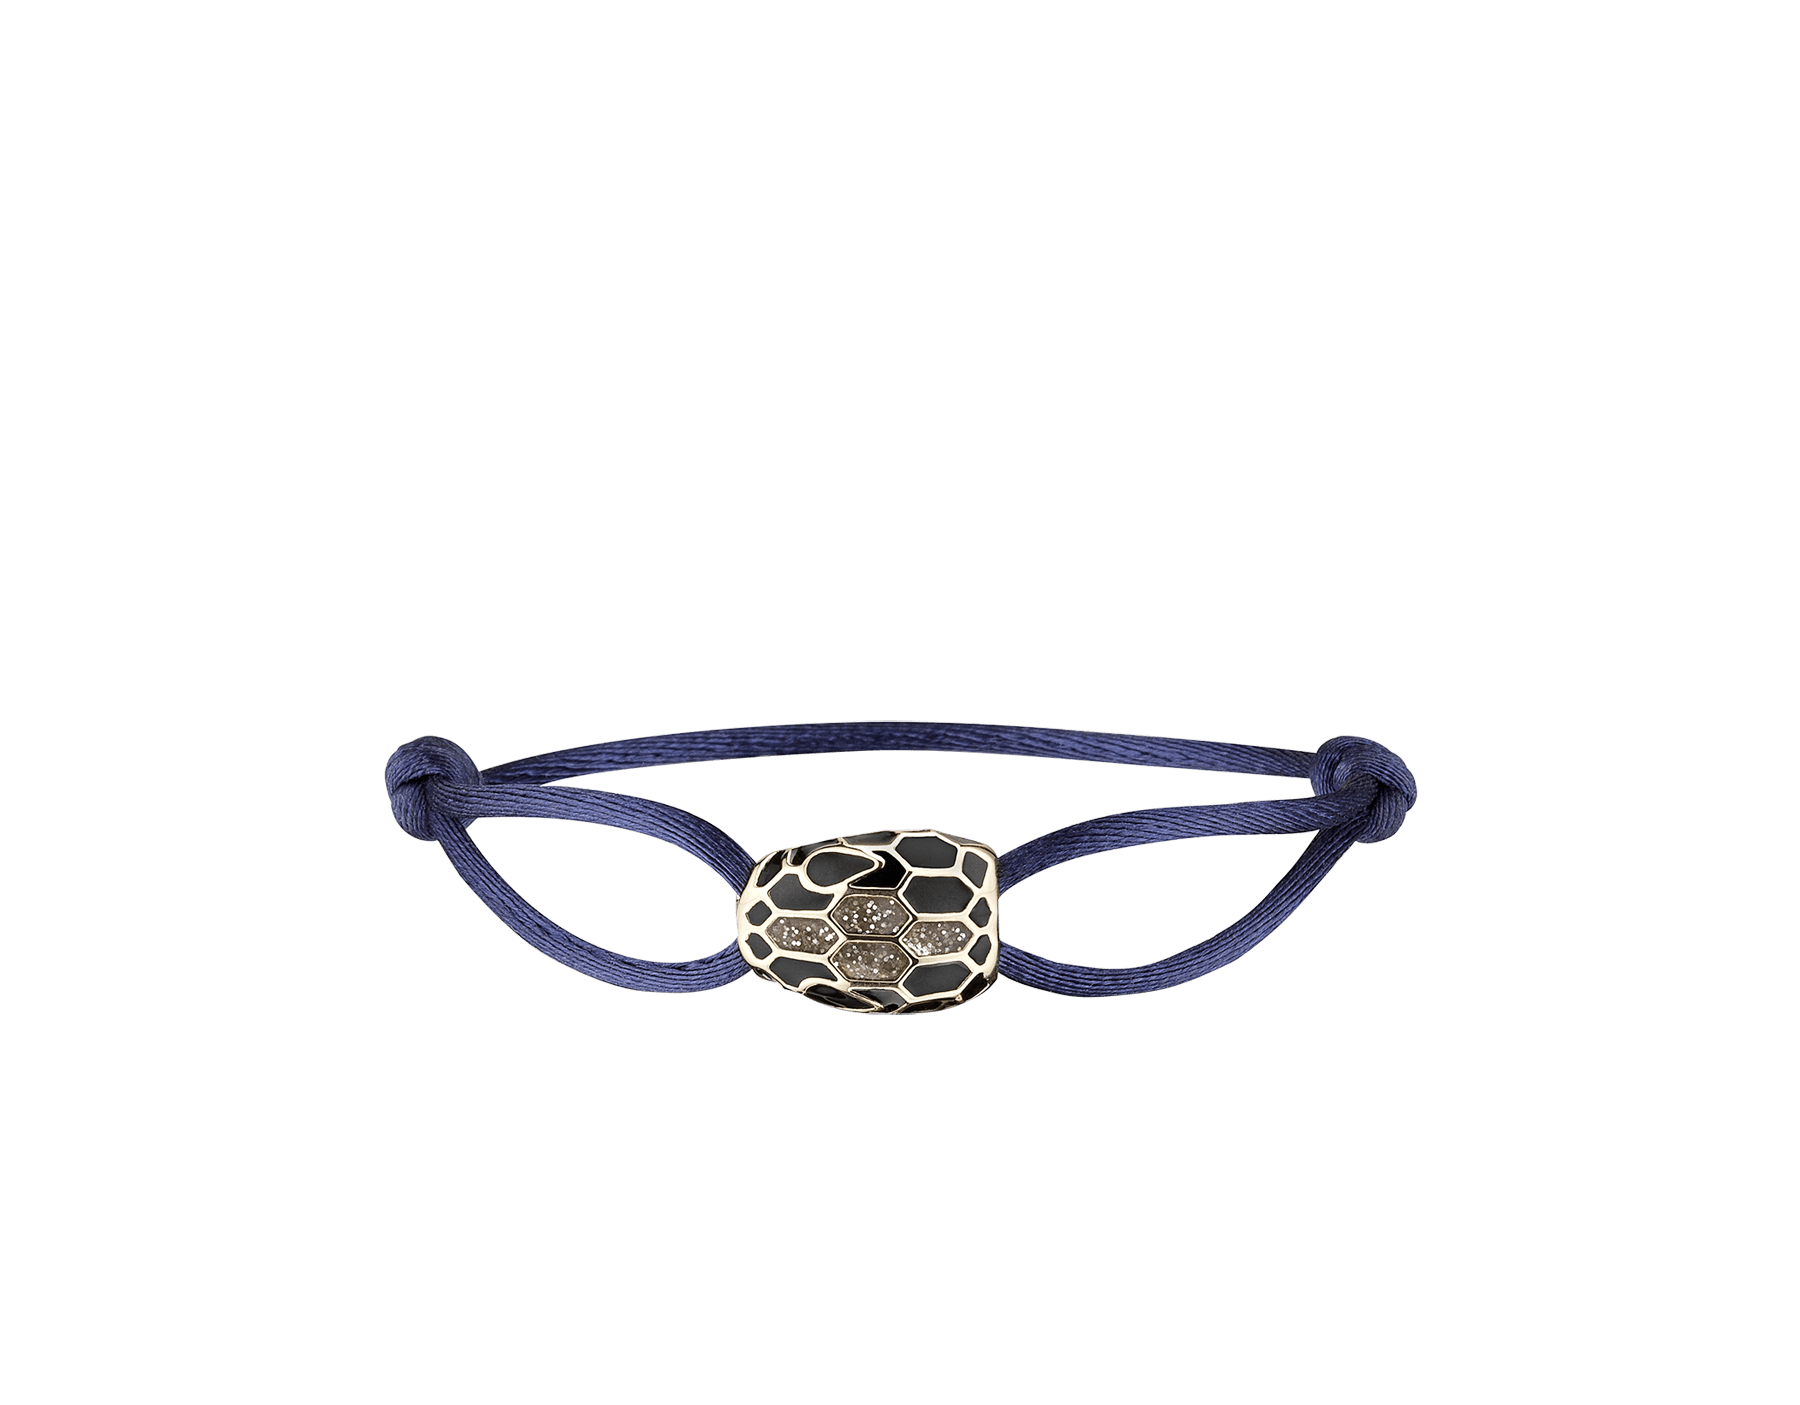 """""""Serpenti Forever"""" bracelet in Mimetic Jade green fabric with a dark ruthenium-plated brass tempting snakehead décor enamelled in black, with seductive black enamel eyes. SERP-STRINGb image 3"""